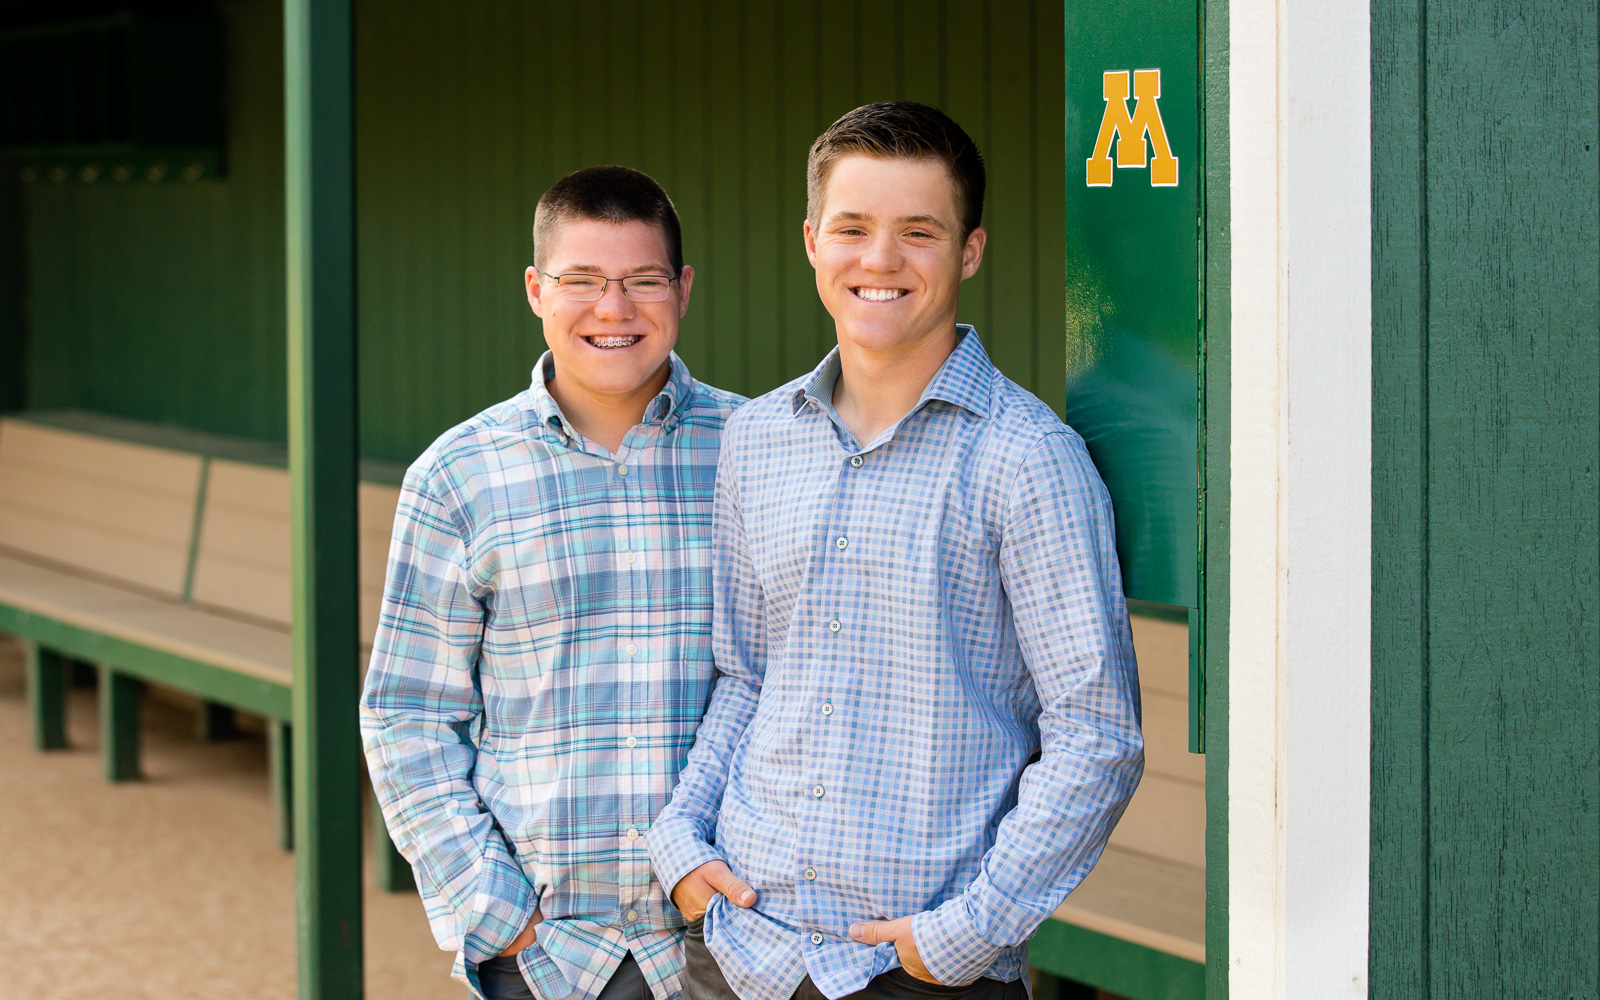 Senior and Family Photographs Rochester MN   Olive Juice Studios -